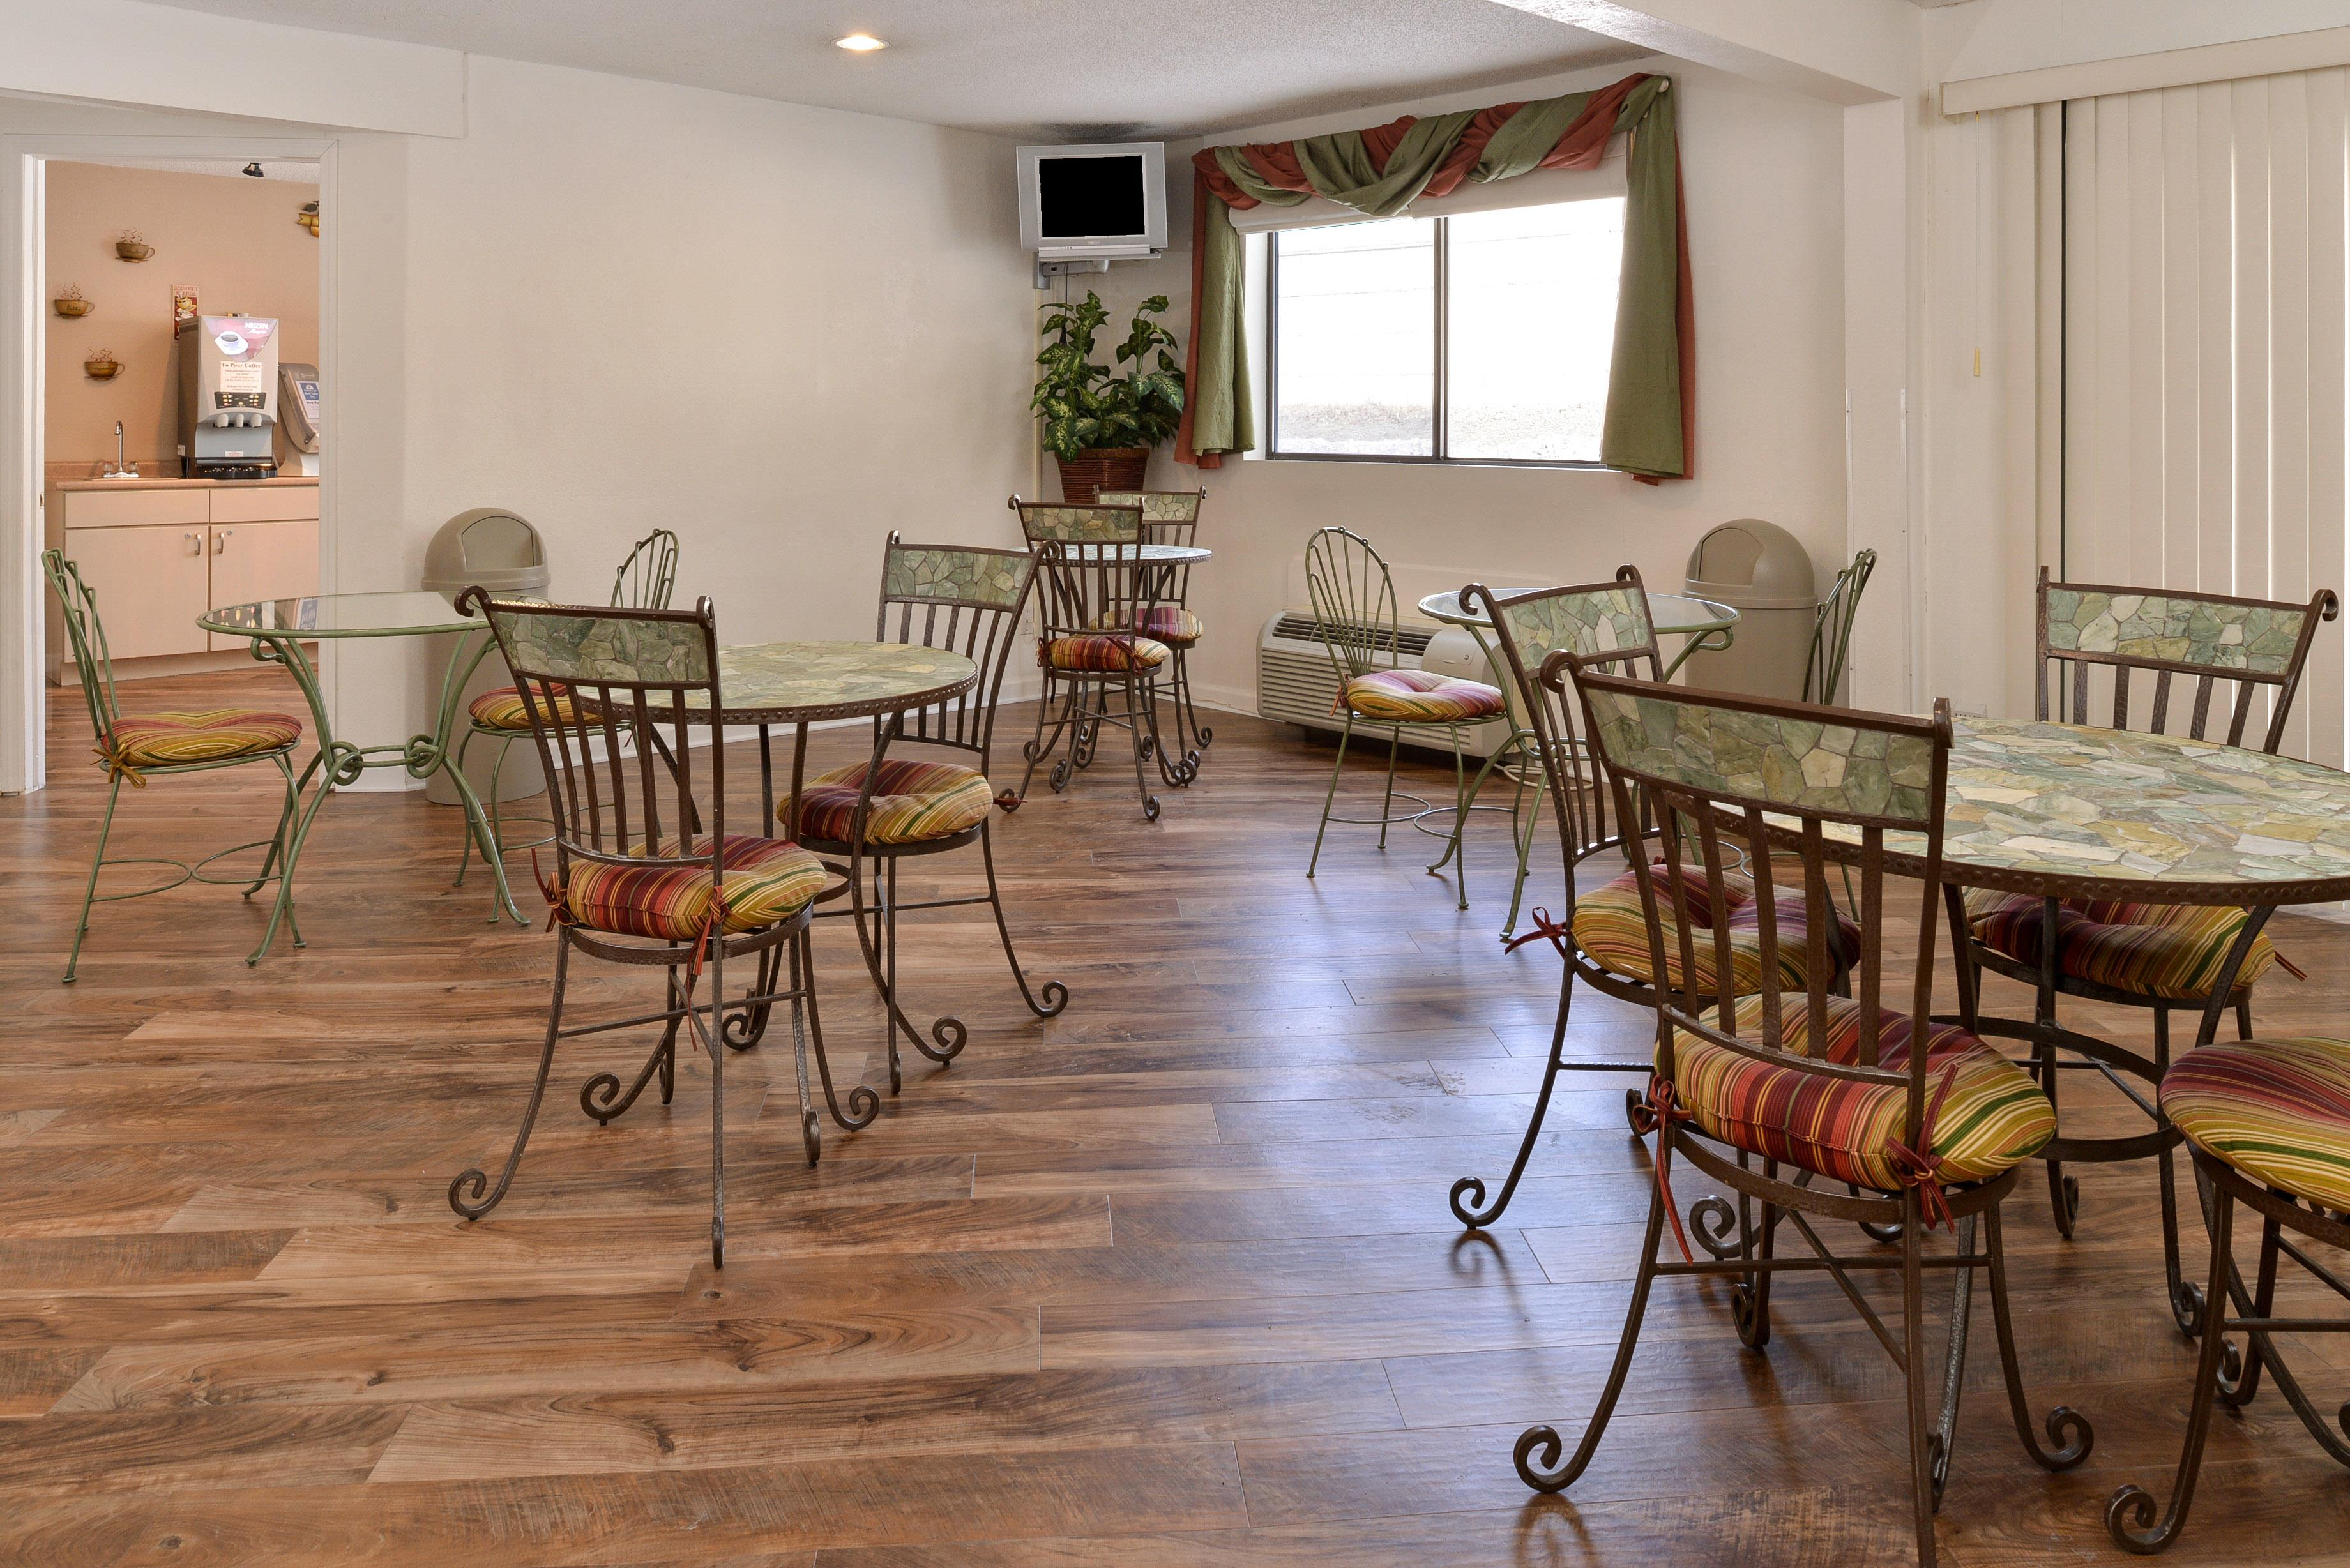 Americas Best Value Inn - New Paltz image 27